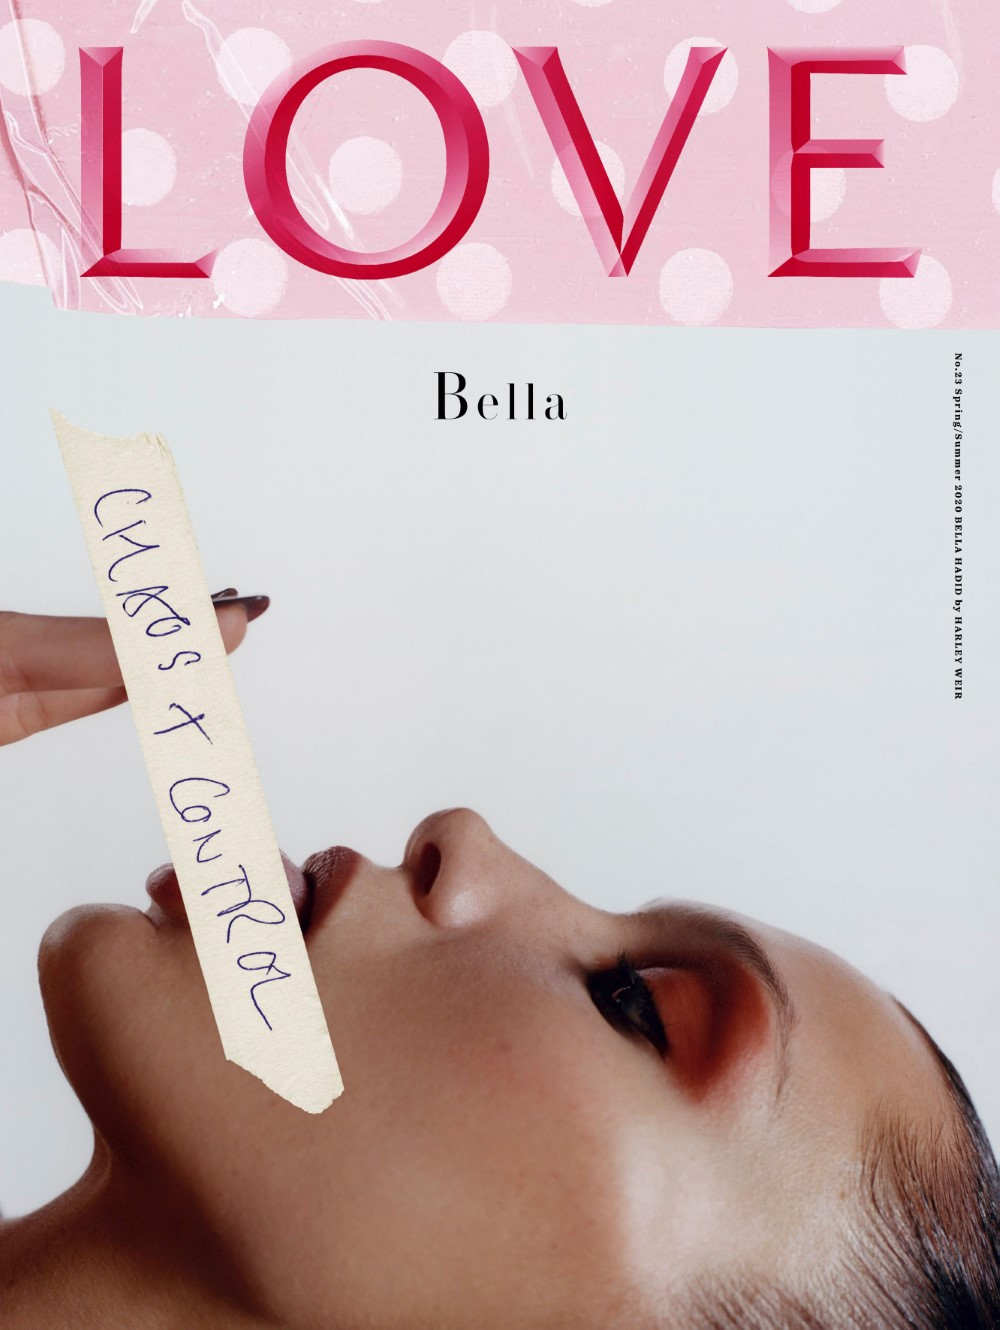 Bella Hadid covers LOVE Magazine Issue 23 by Harley Weir